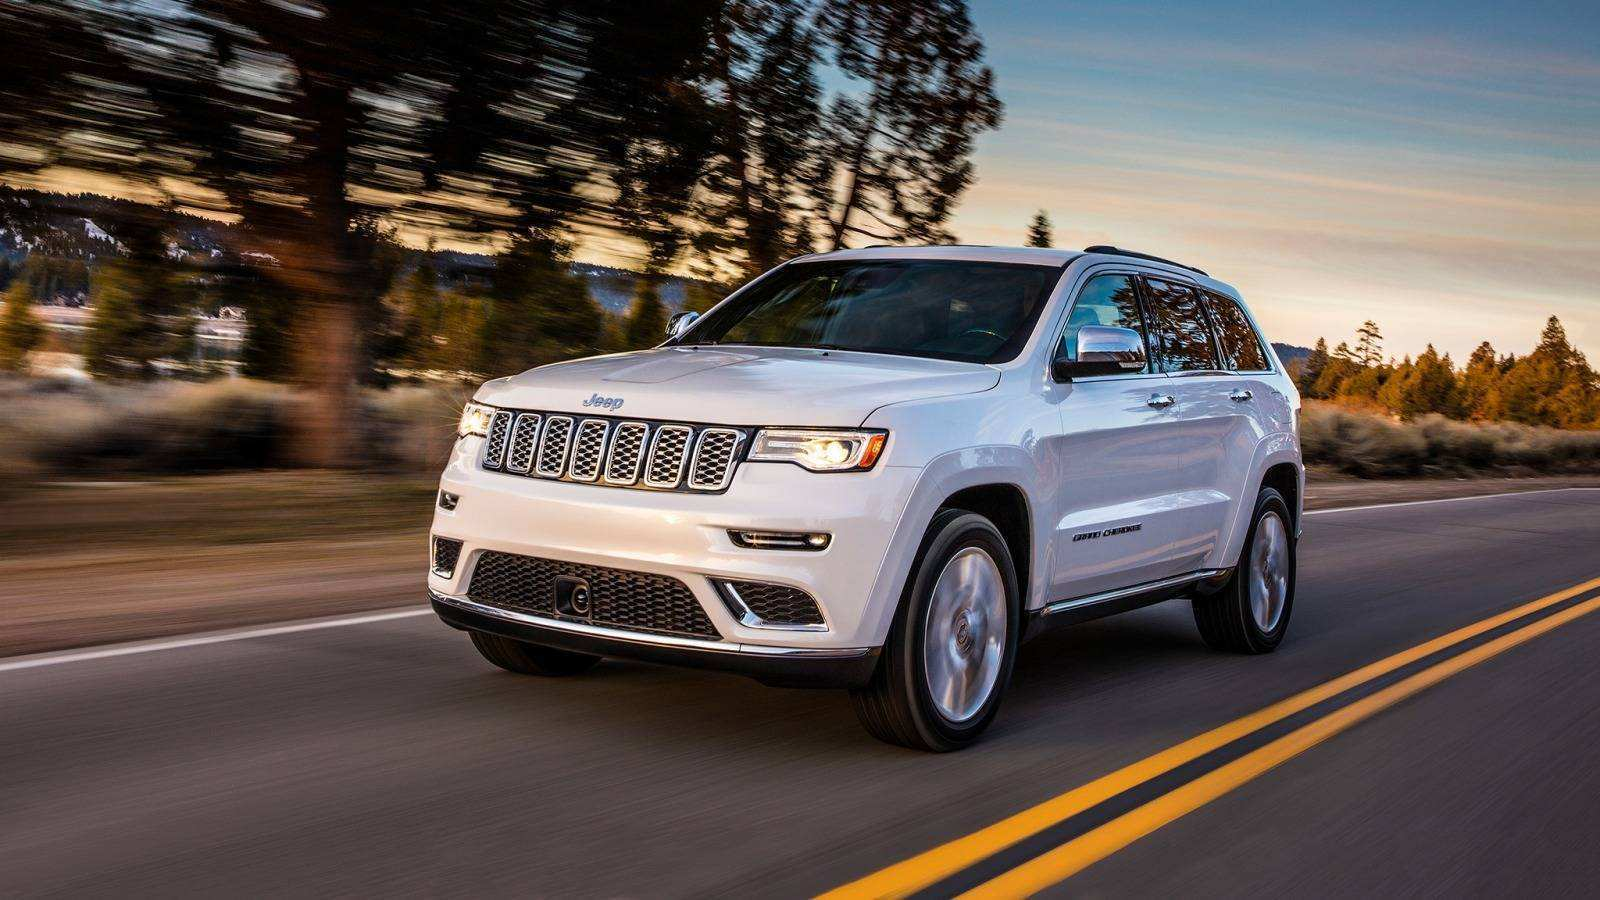 46 Great Best Cherokee Jeep 2019 Review Specs And Review Specs for Best Cherokee Jeep 2019 Review Specs And Review